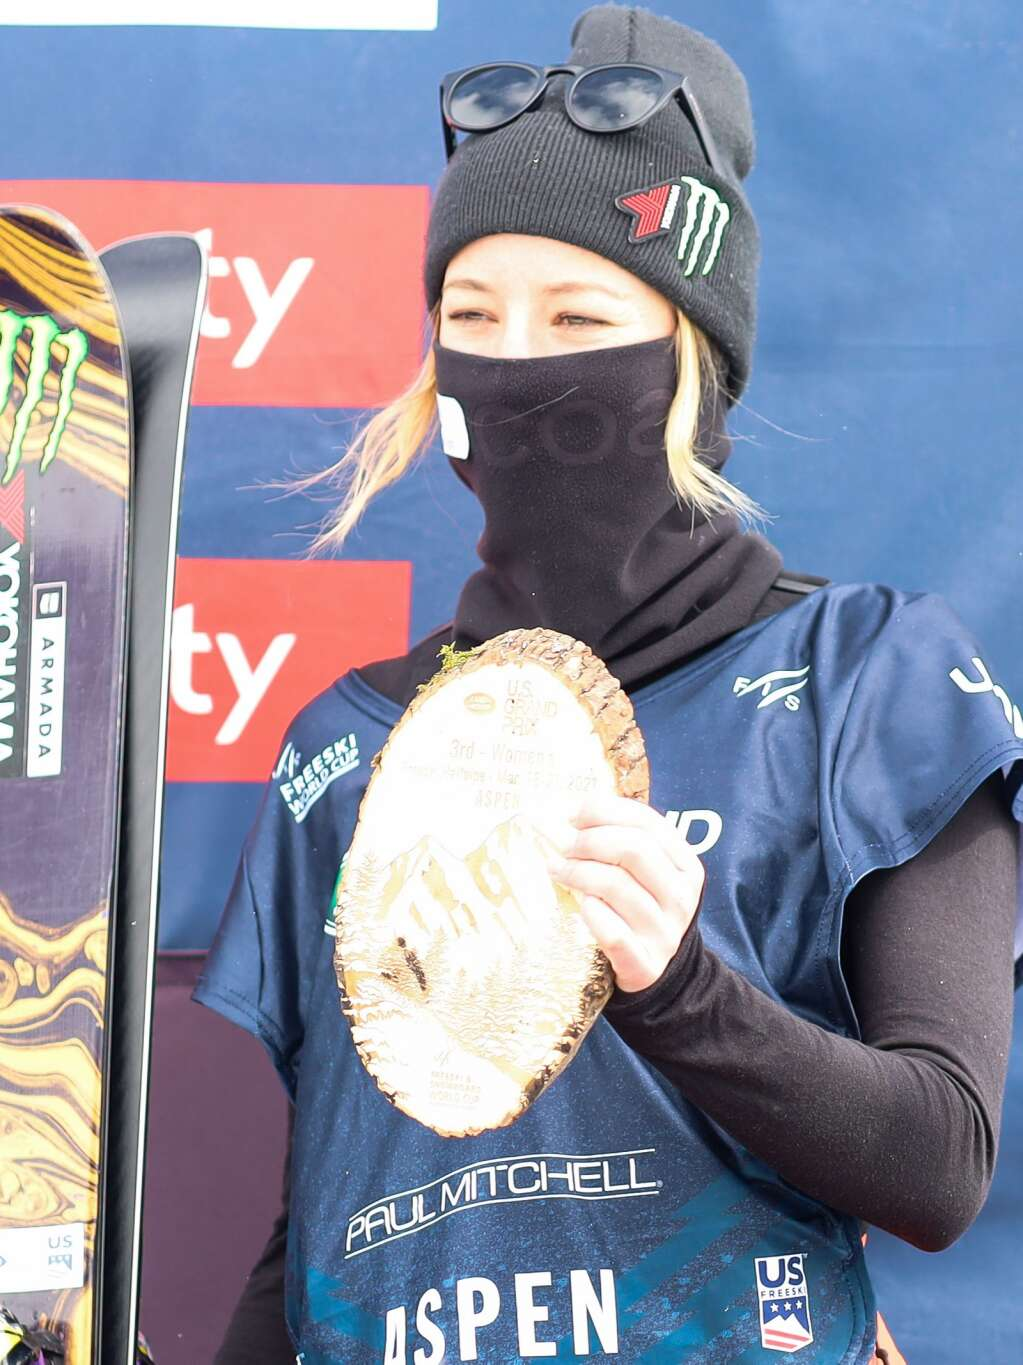 Brita Sigourney stands on the podium of the women's freeski halfpipe final of the U.S. Grand Prix on Sunday, March 21, 2021, at Buttermilk Ski Area in Aspen. Photo by Austin Colbert/The Aspen Times.